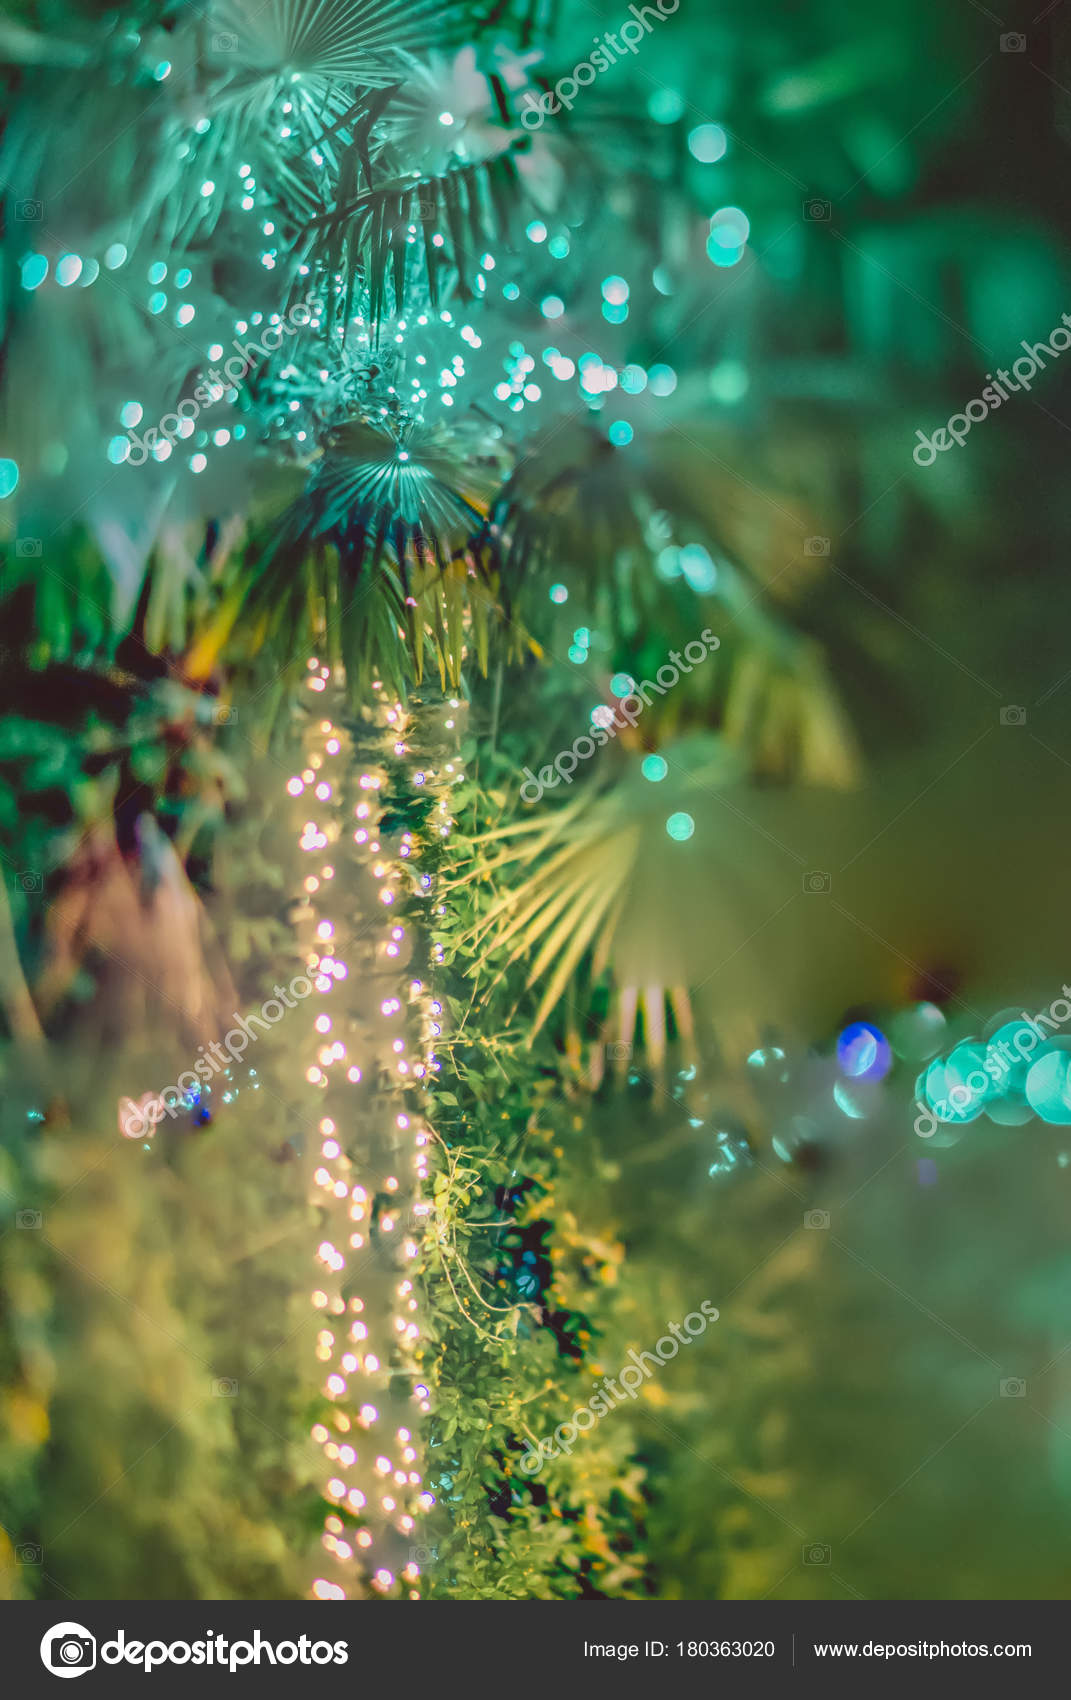 palm trees decorated christmas lights gardens stock photo - Palm Tree Decorated For Christmas